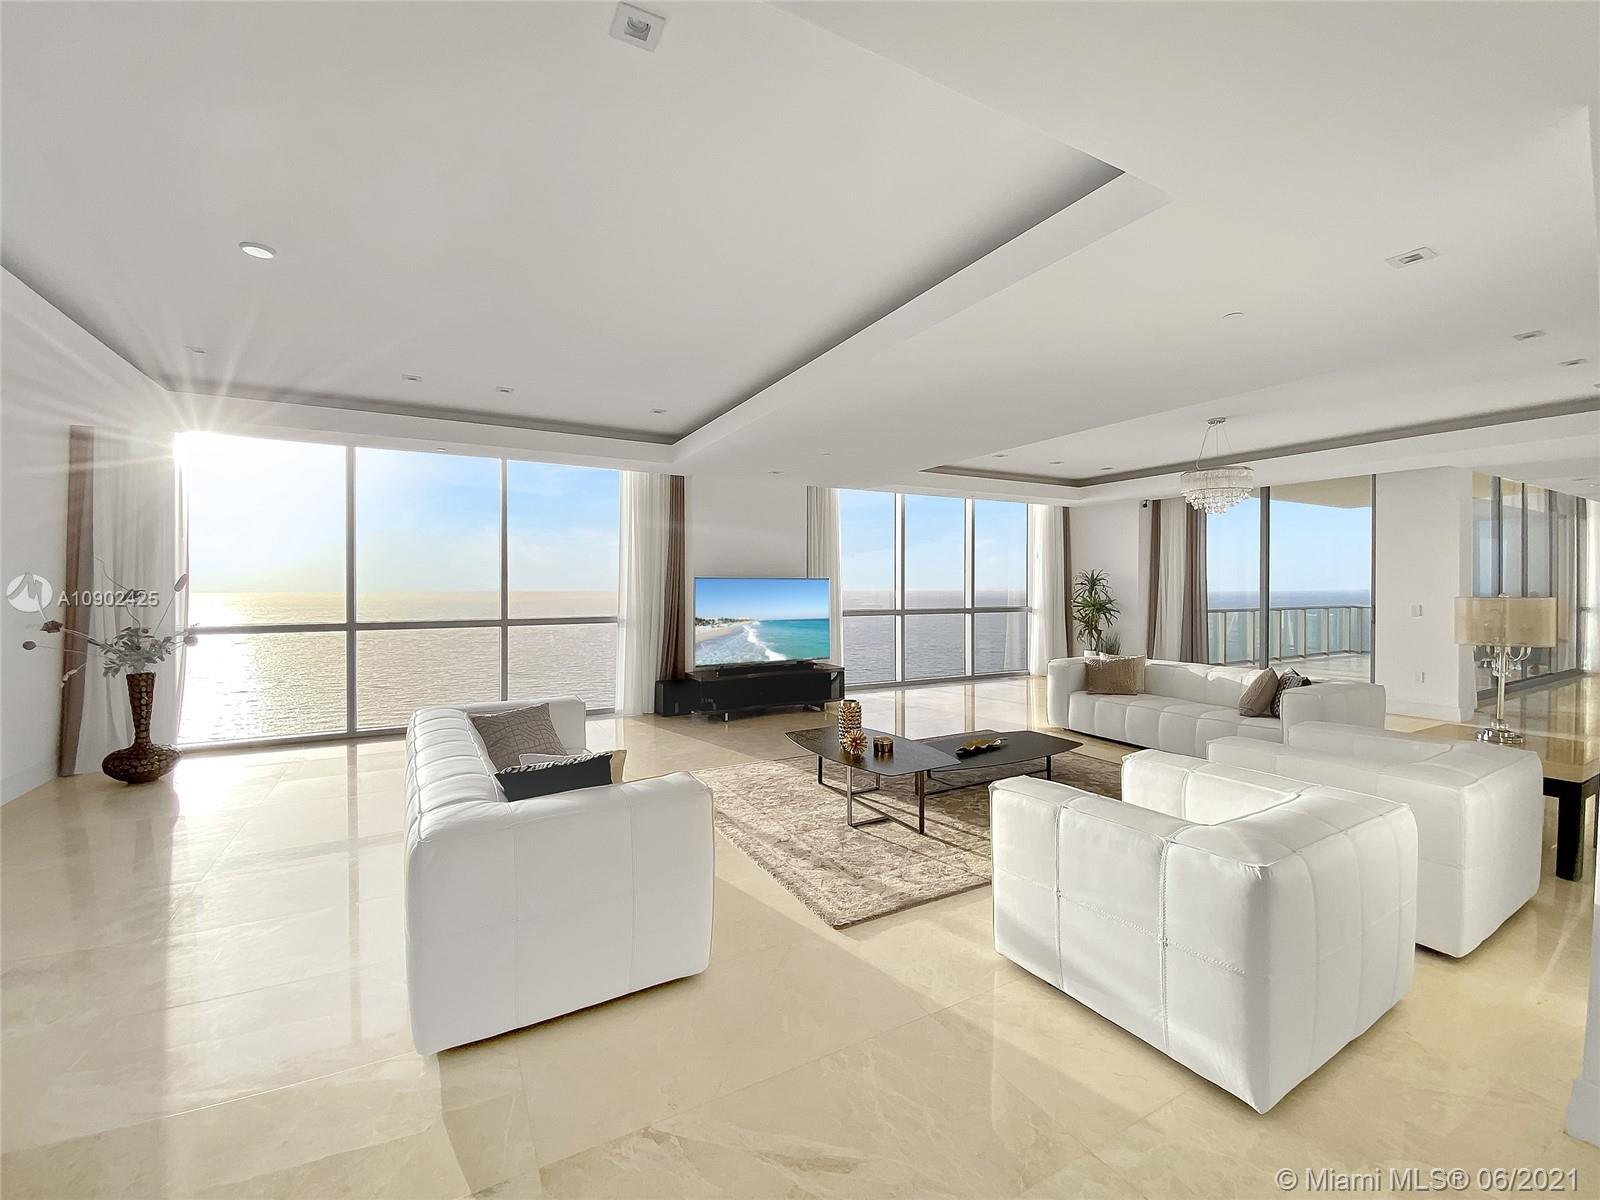 Live the 5-star luxury resort lifestyle from the entire full floor Tower Suite at the very exclusive and private Mansions at Aqualina in Sunny Isles, Florida. This full-floor includes 4 bedrooms, 5 and a half bathrooms for a total of 9,218 sqft. Unit features stunning marble and wood floors, floor to ceiling high-impact windows, full bar, gourmet kitchen with top appliances, and outdoor summer kitchen with a barbecue, This Oceanfront mansion in the Sky includes 4 terraces, a private pool/jacuzzi, and 360-degree views of the Ocean, Intracoastal and Miami's skyline. The Tower Suite includes a private covered garage for 2 cars. The tower offers Doorman, 24-hour security, movie theater, oceanfront exercise room, wine and cigar lounge, beach service, game room, soccer field, room service, more.